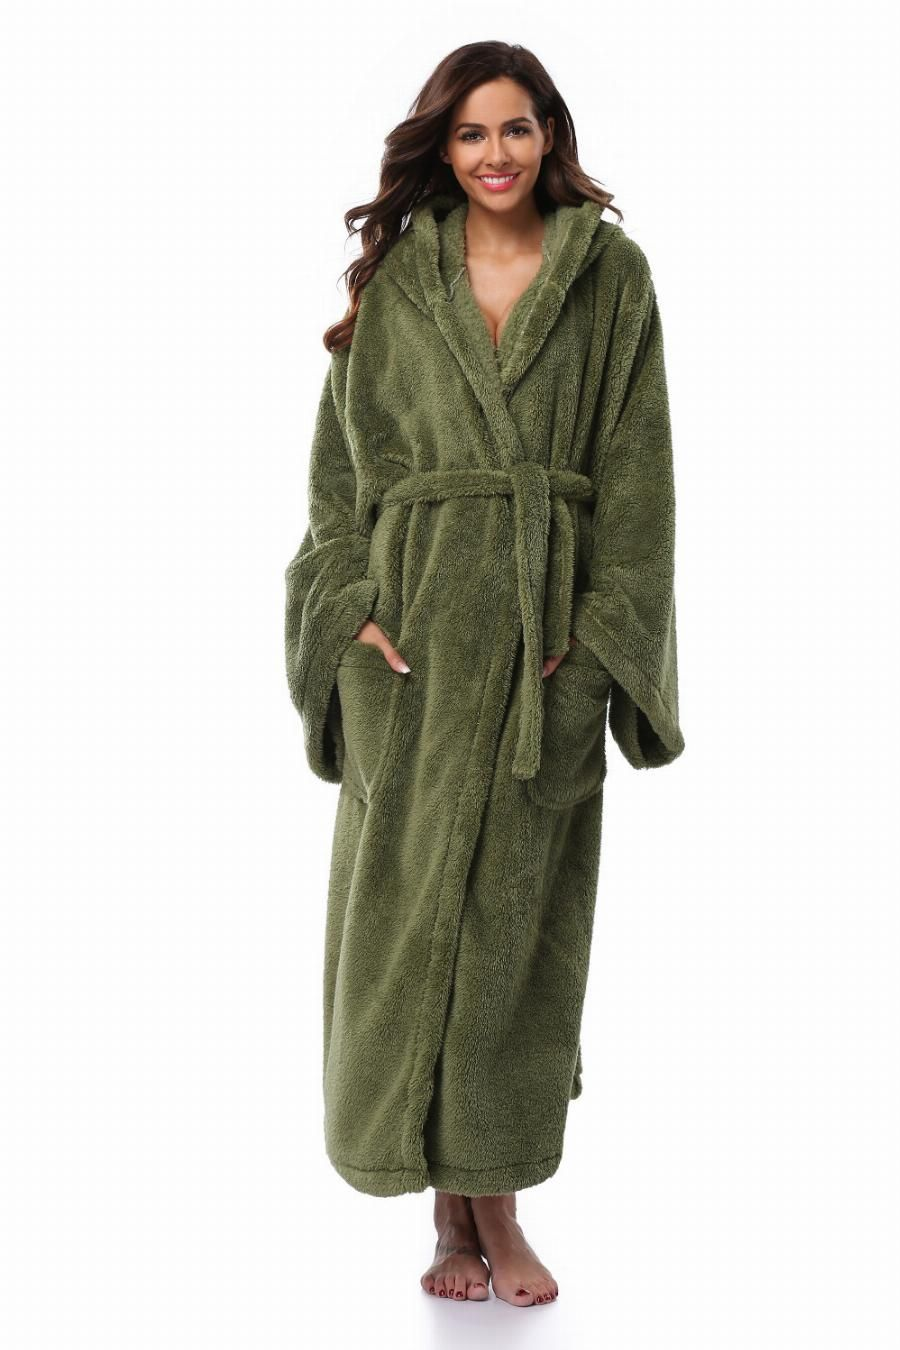 c1d70cb8a6 Winter Thick Warm Women Robes 2017 Coral Fleece Sleepwear Long Robe Woman  Hotel Spa Plush Long Hooded Bathrobe Nightgown Kimono